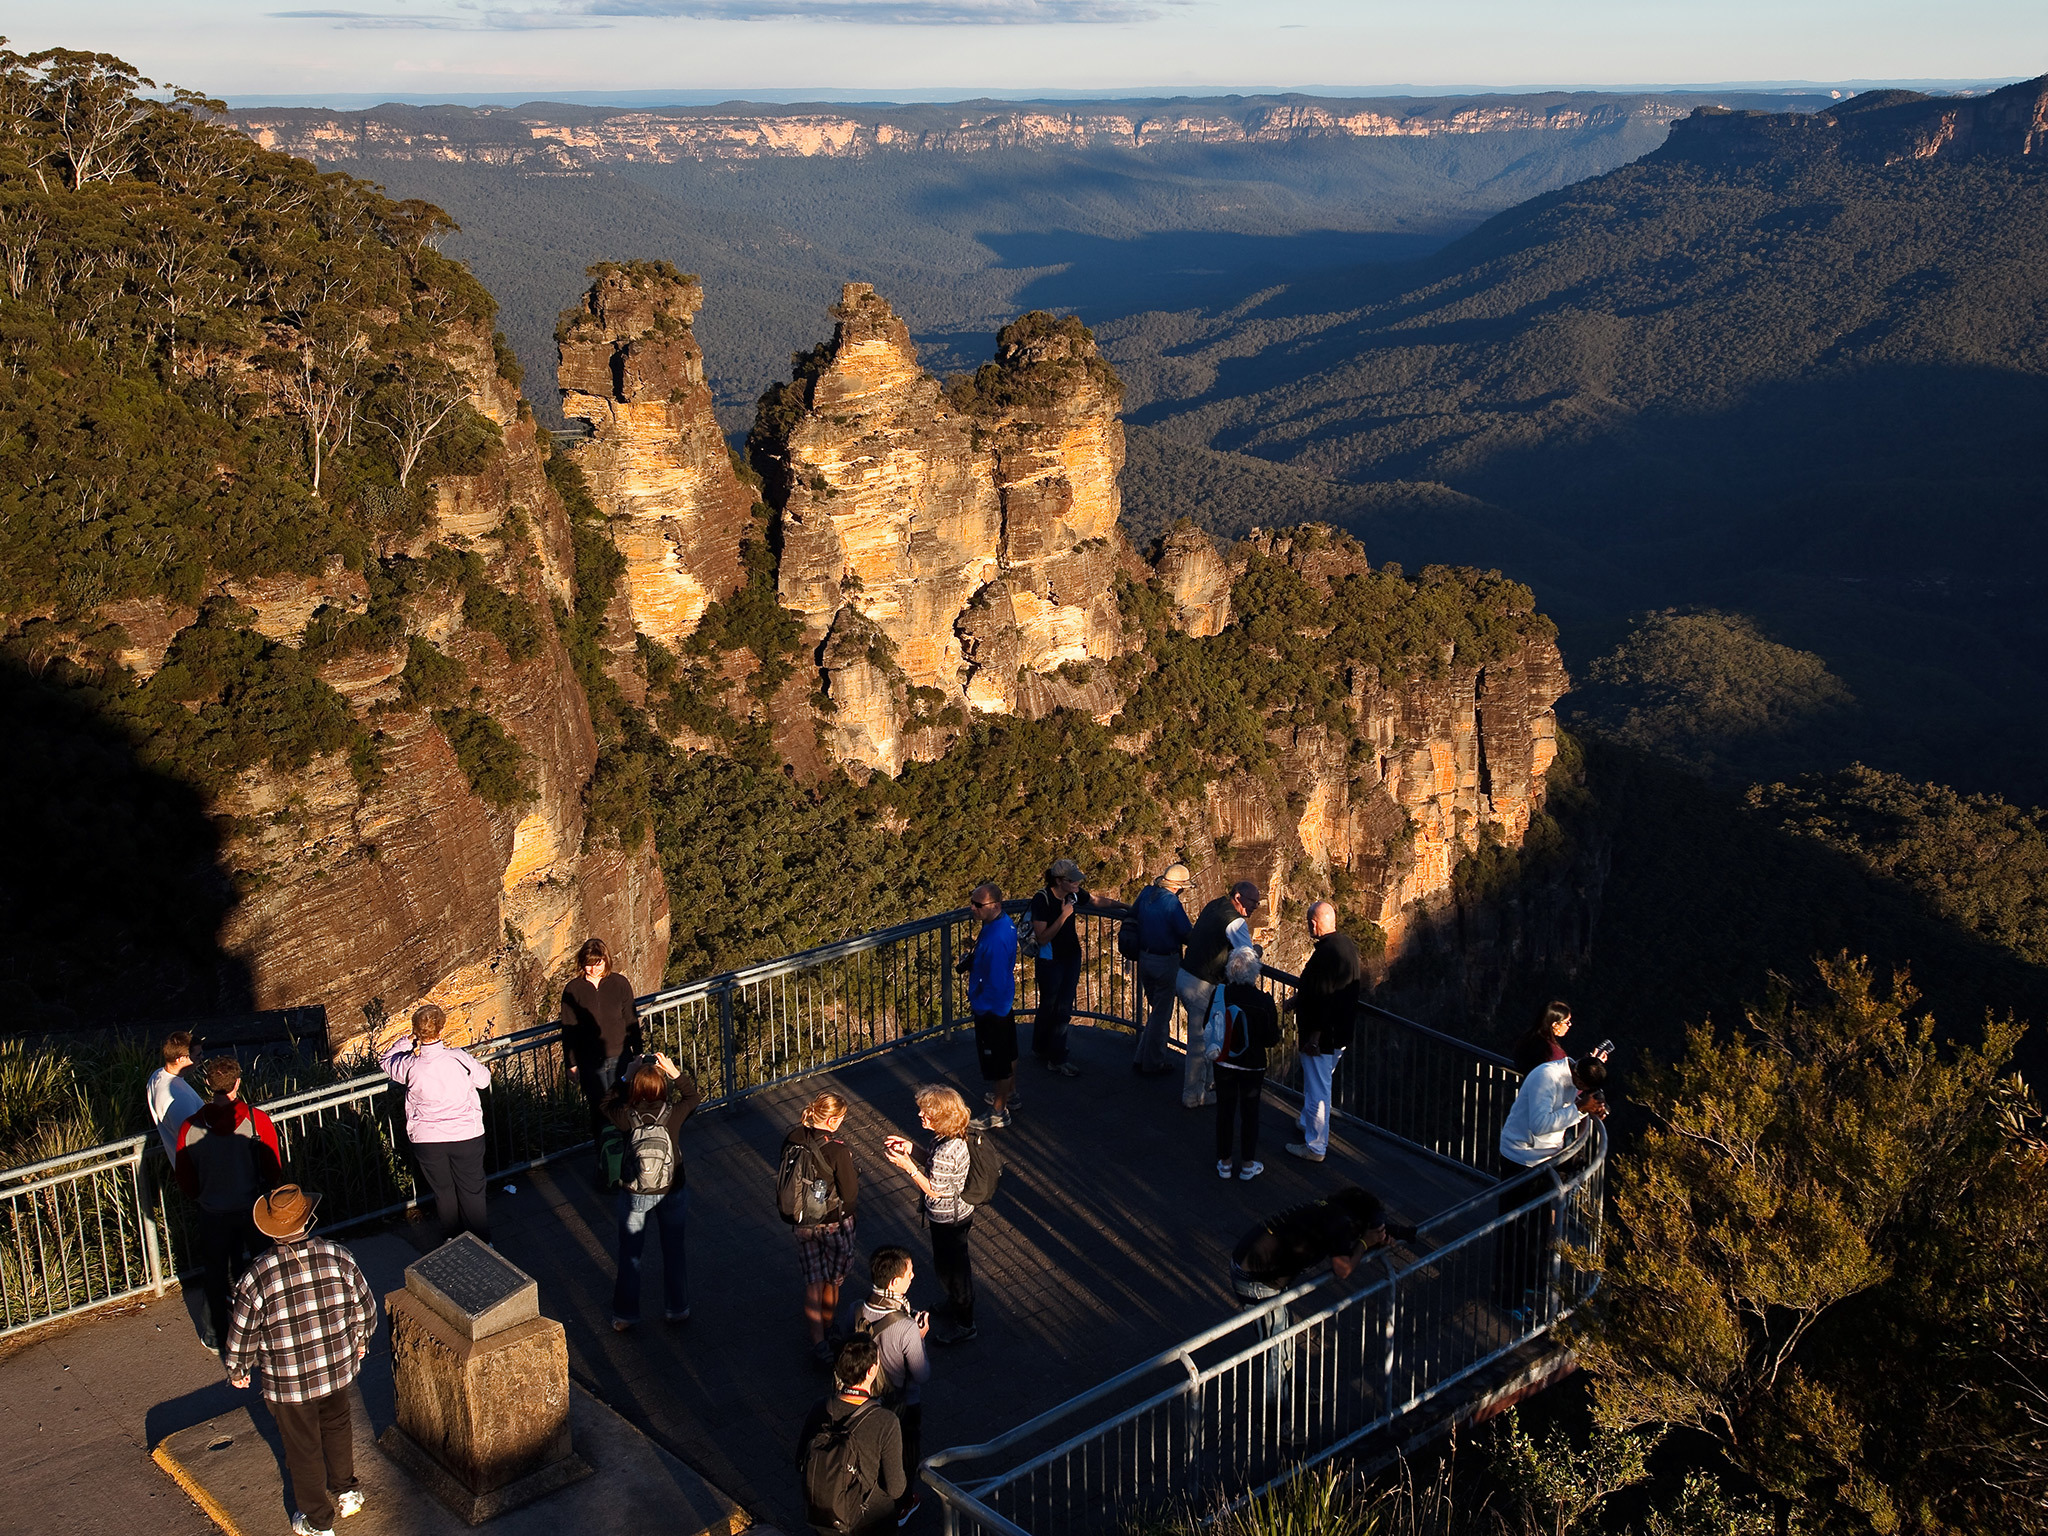 Visitors overlook the Three Sisters from a lookout